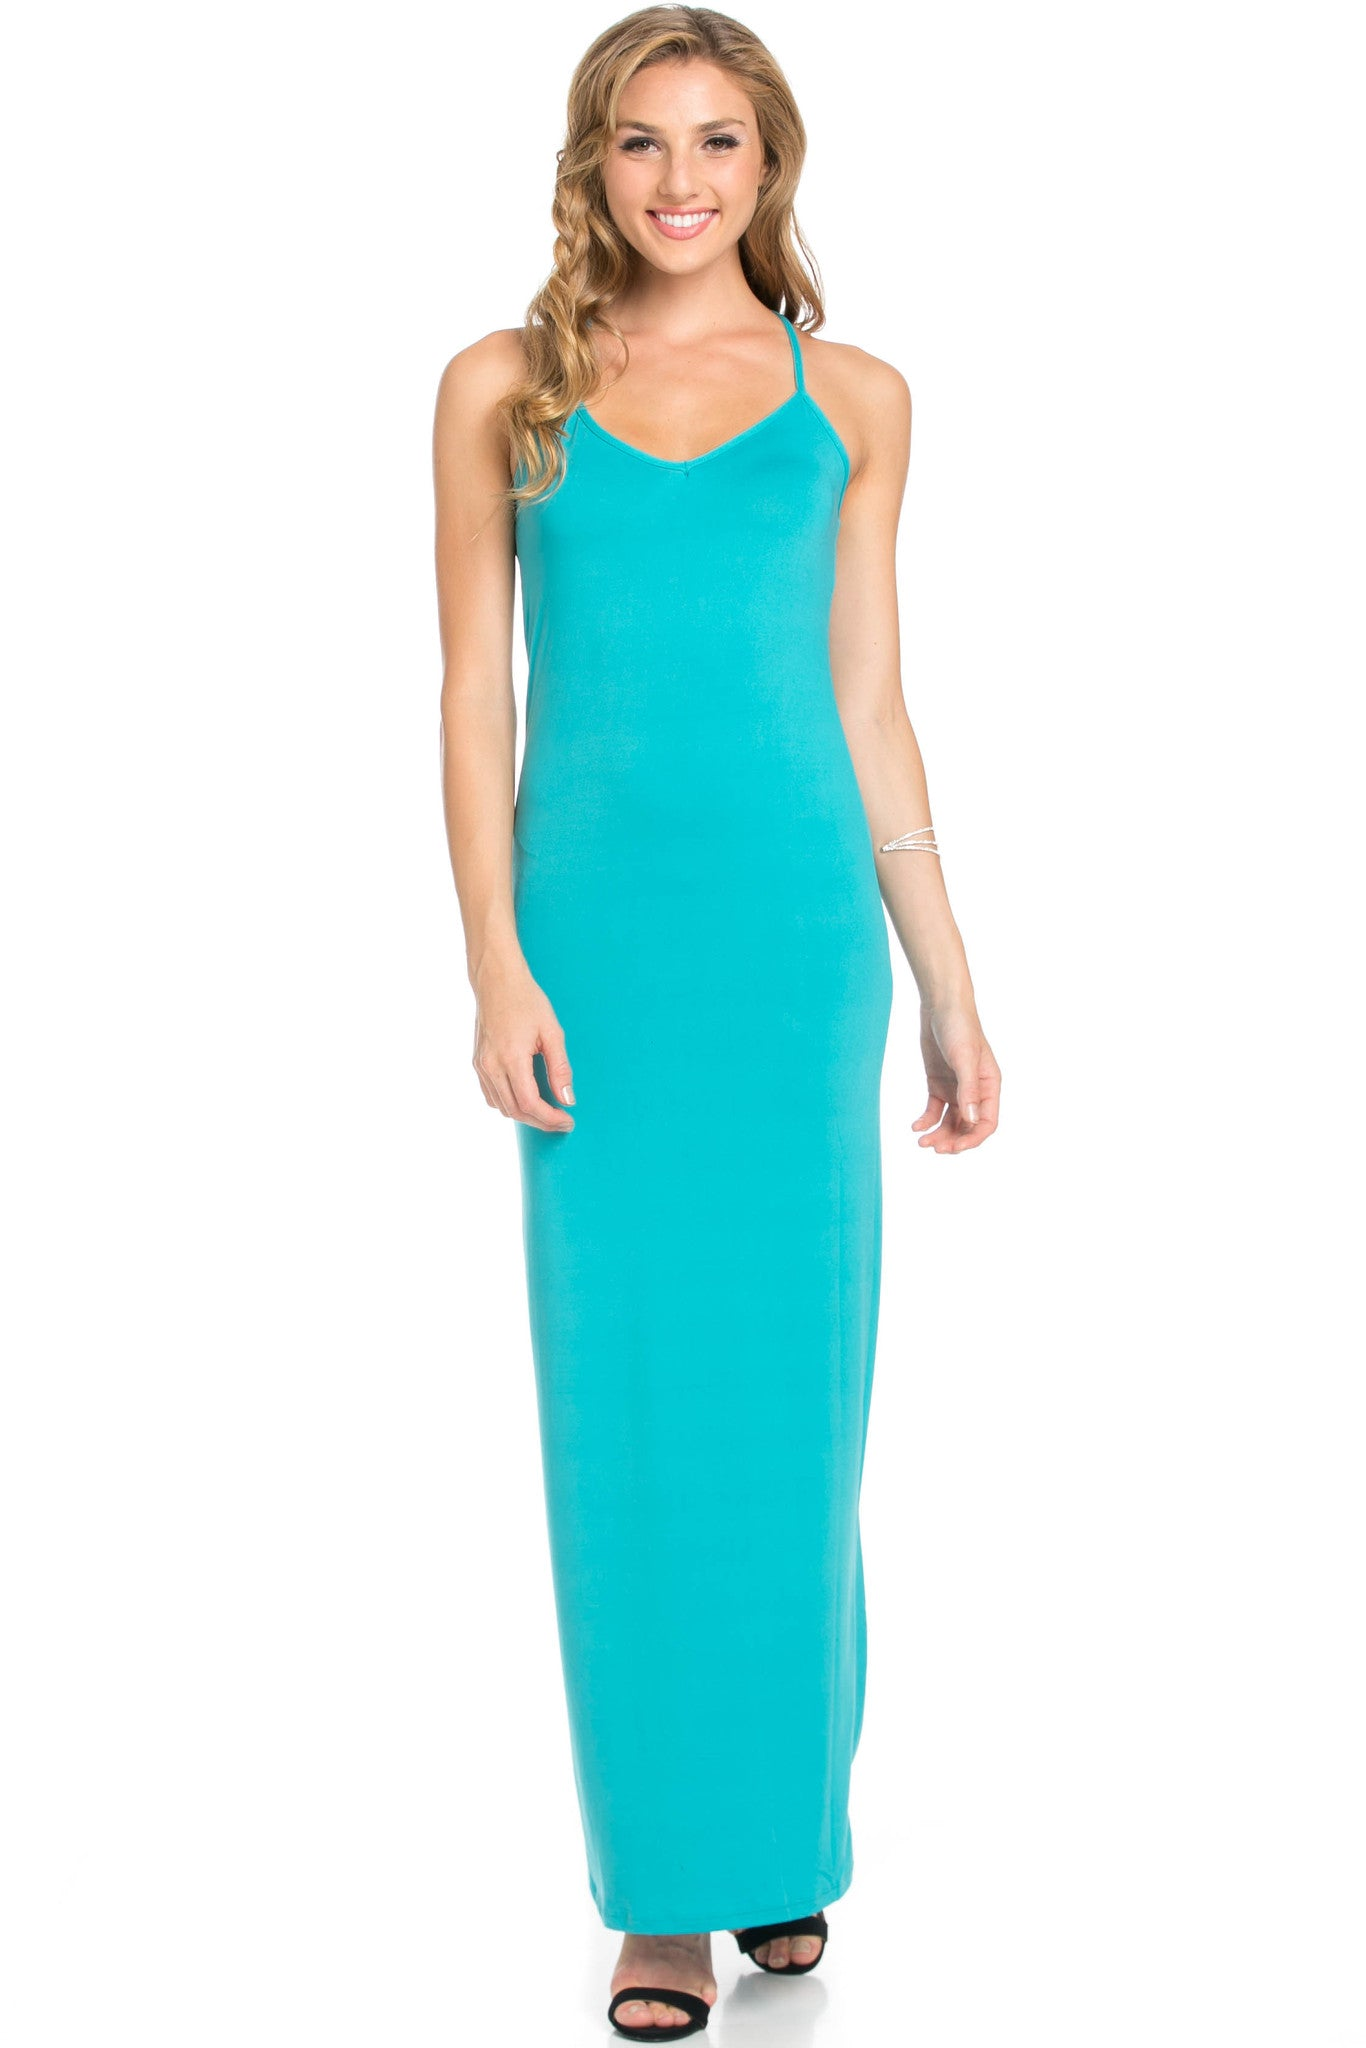 Micro Suede Jade Maxi Dress - Dresses - My Yuccie - 2